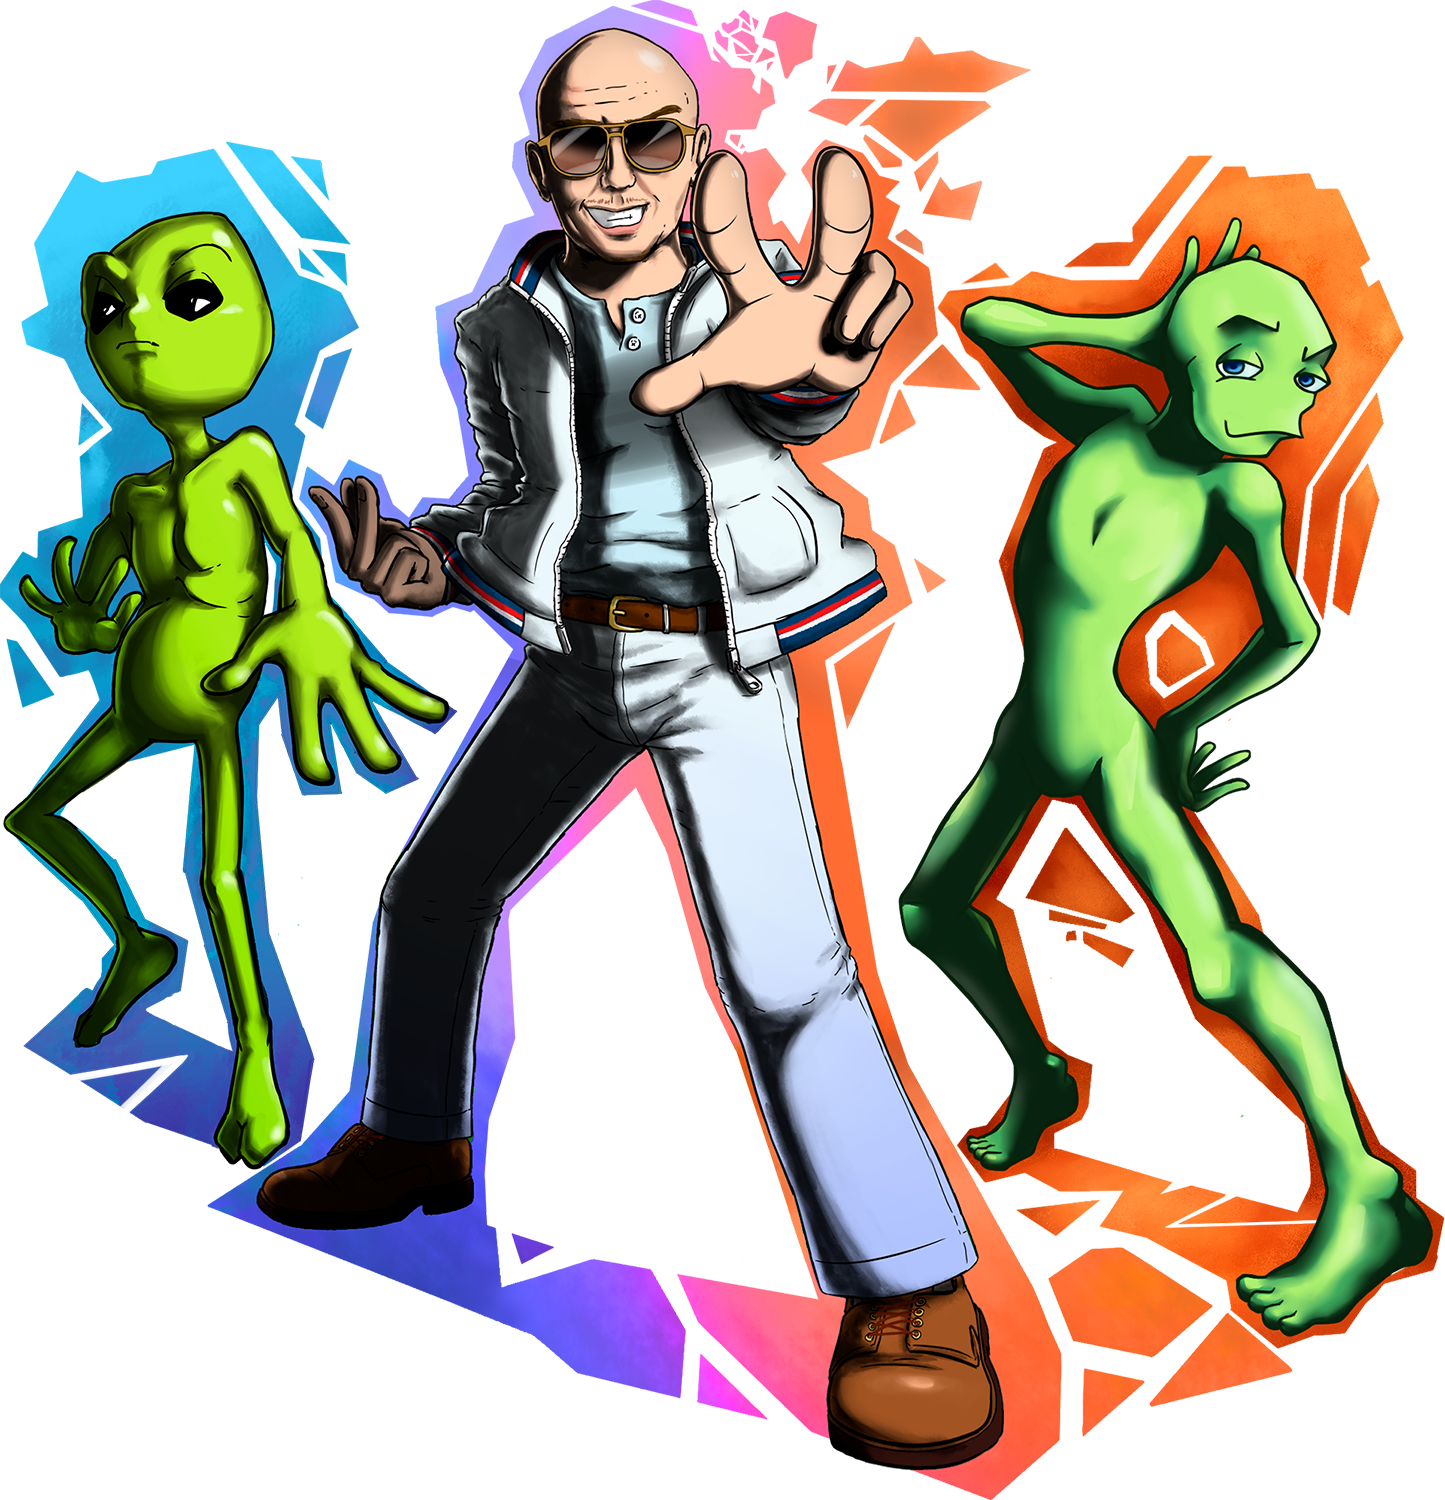 Pitbull and the Aliens